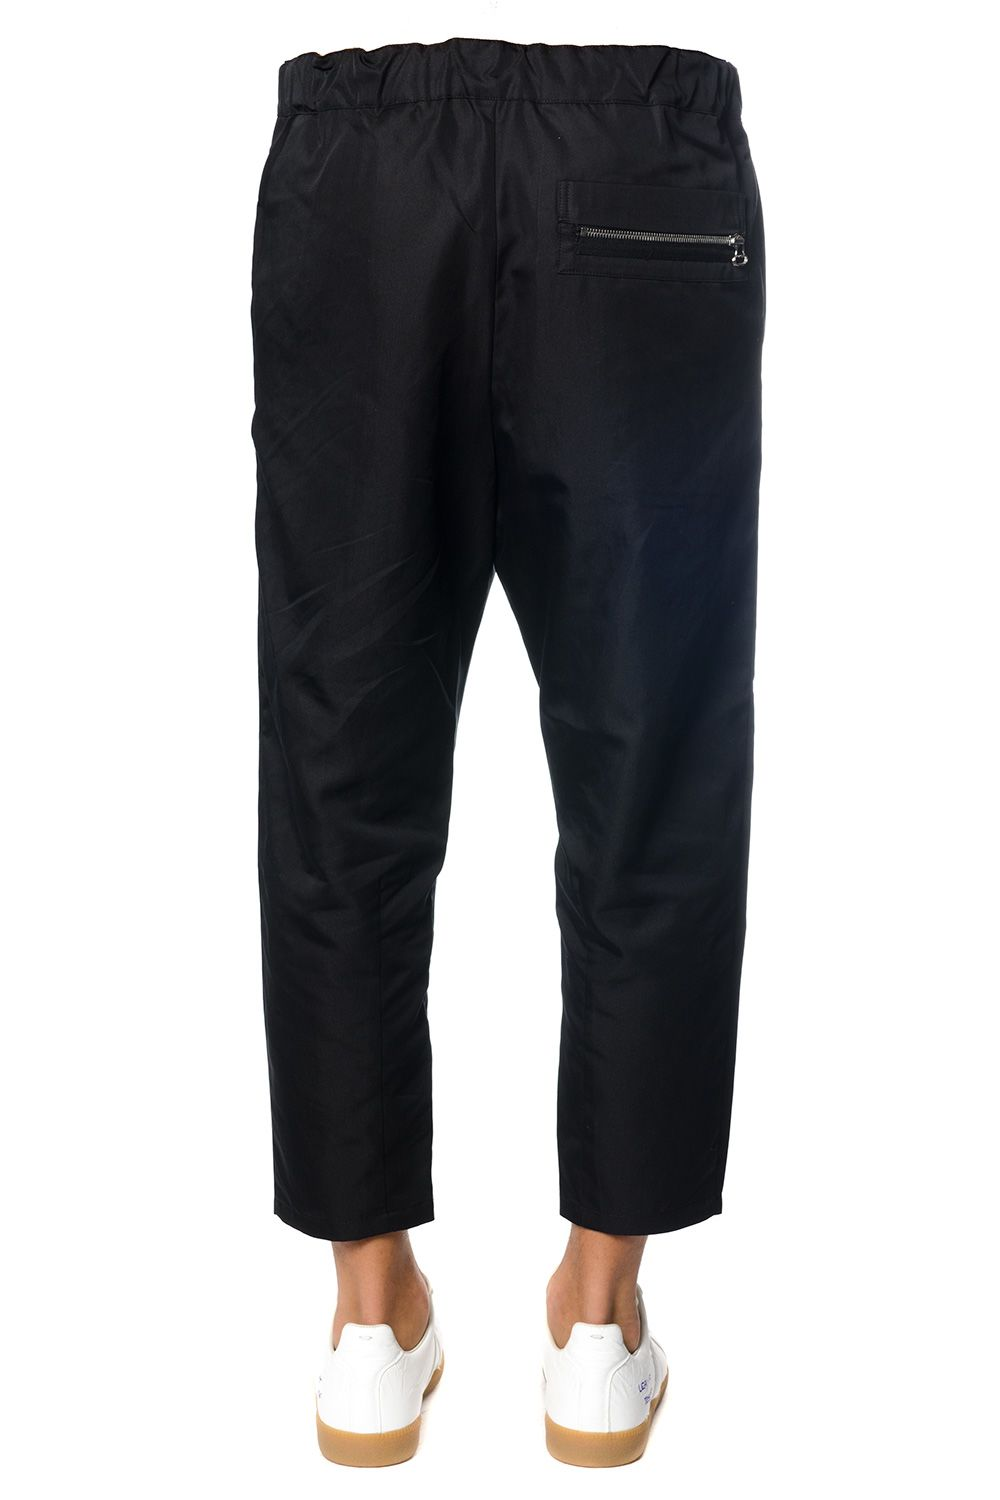 cropped trousers - Black OAMC Outlet With Mastercard Online Store Sale Discounts Clearance Pay With Visa Fast Delivery Online osqDhd